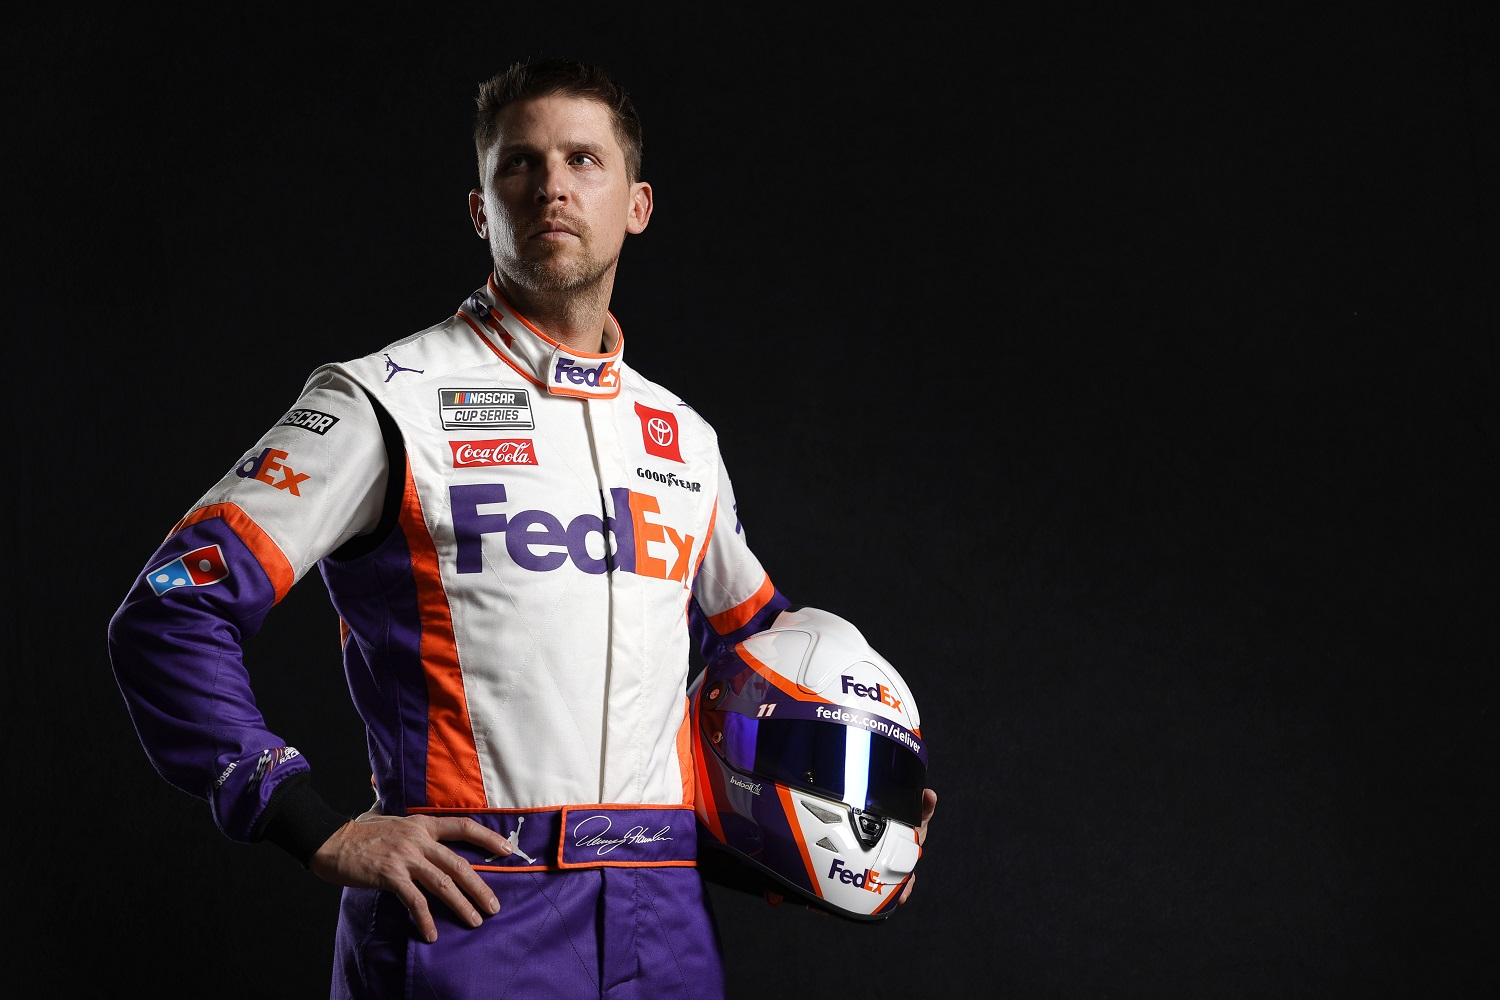 Denny Hamlin Is Walking a Dangerous Tightrope in the NASCAR Cup Series